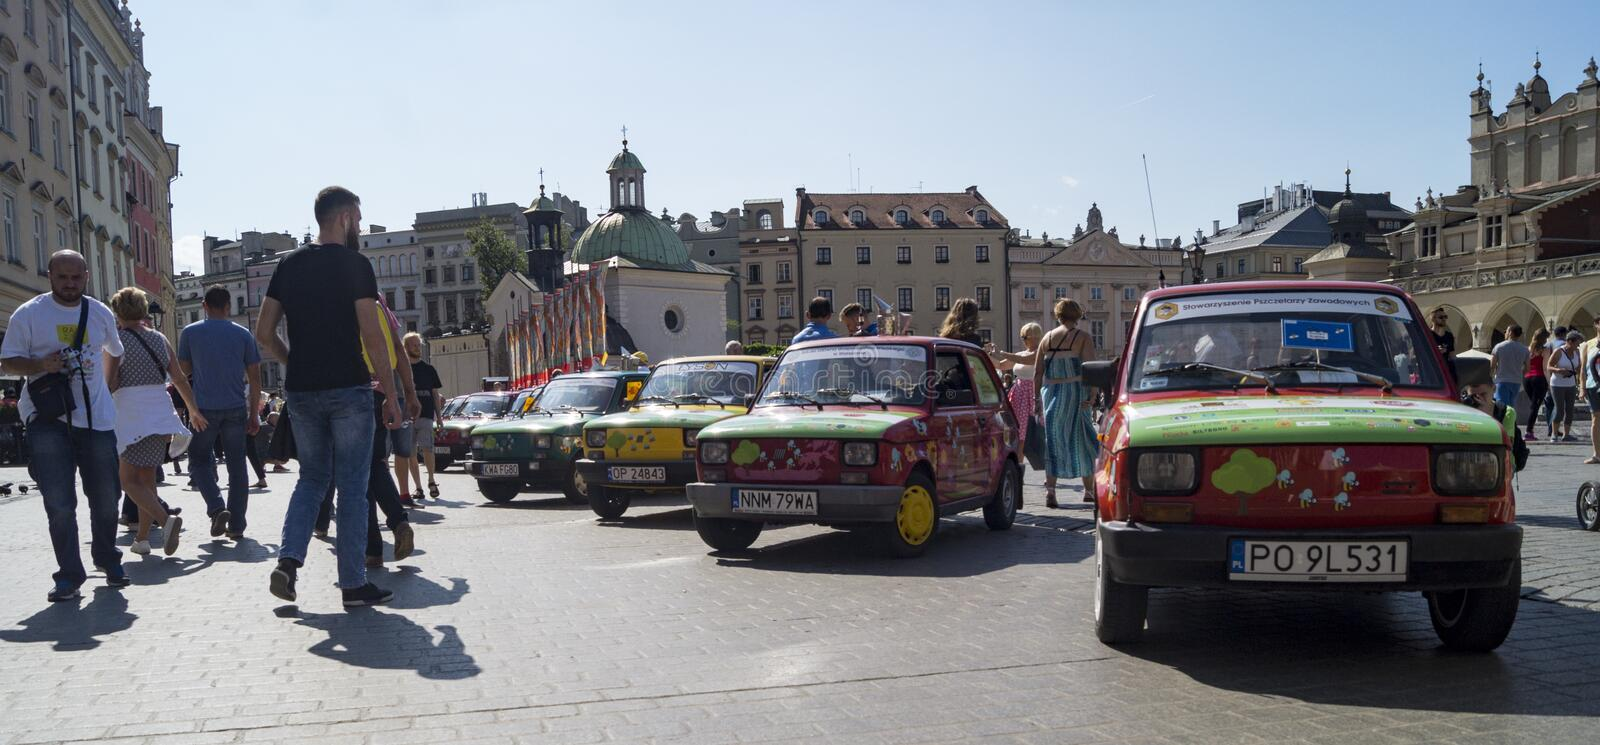 126 in krakow. `Bees will survive when flowers pollinate` under such a slogan to take a rally in Poland to defend bees. Fiat 126 in krakow stock image